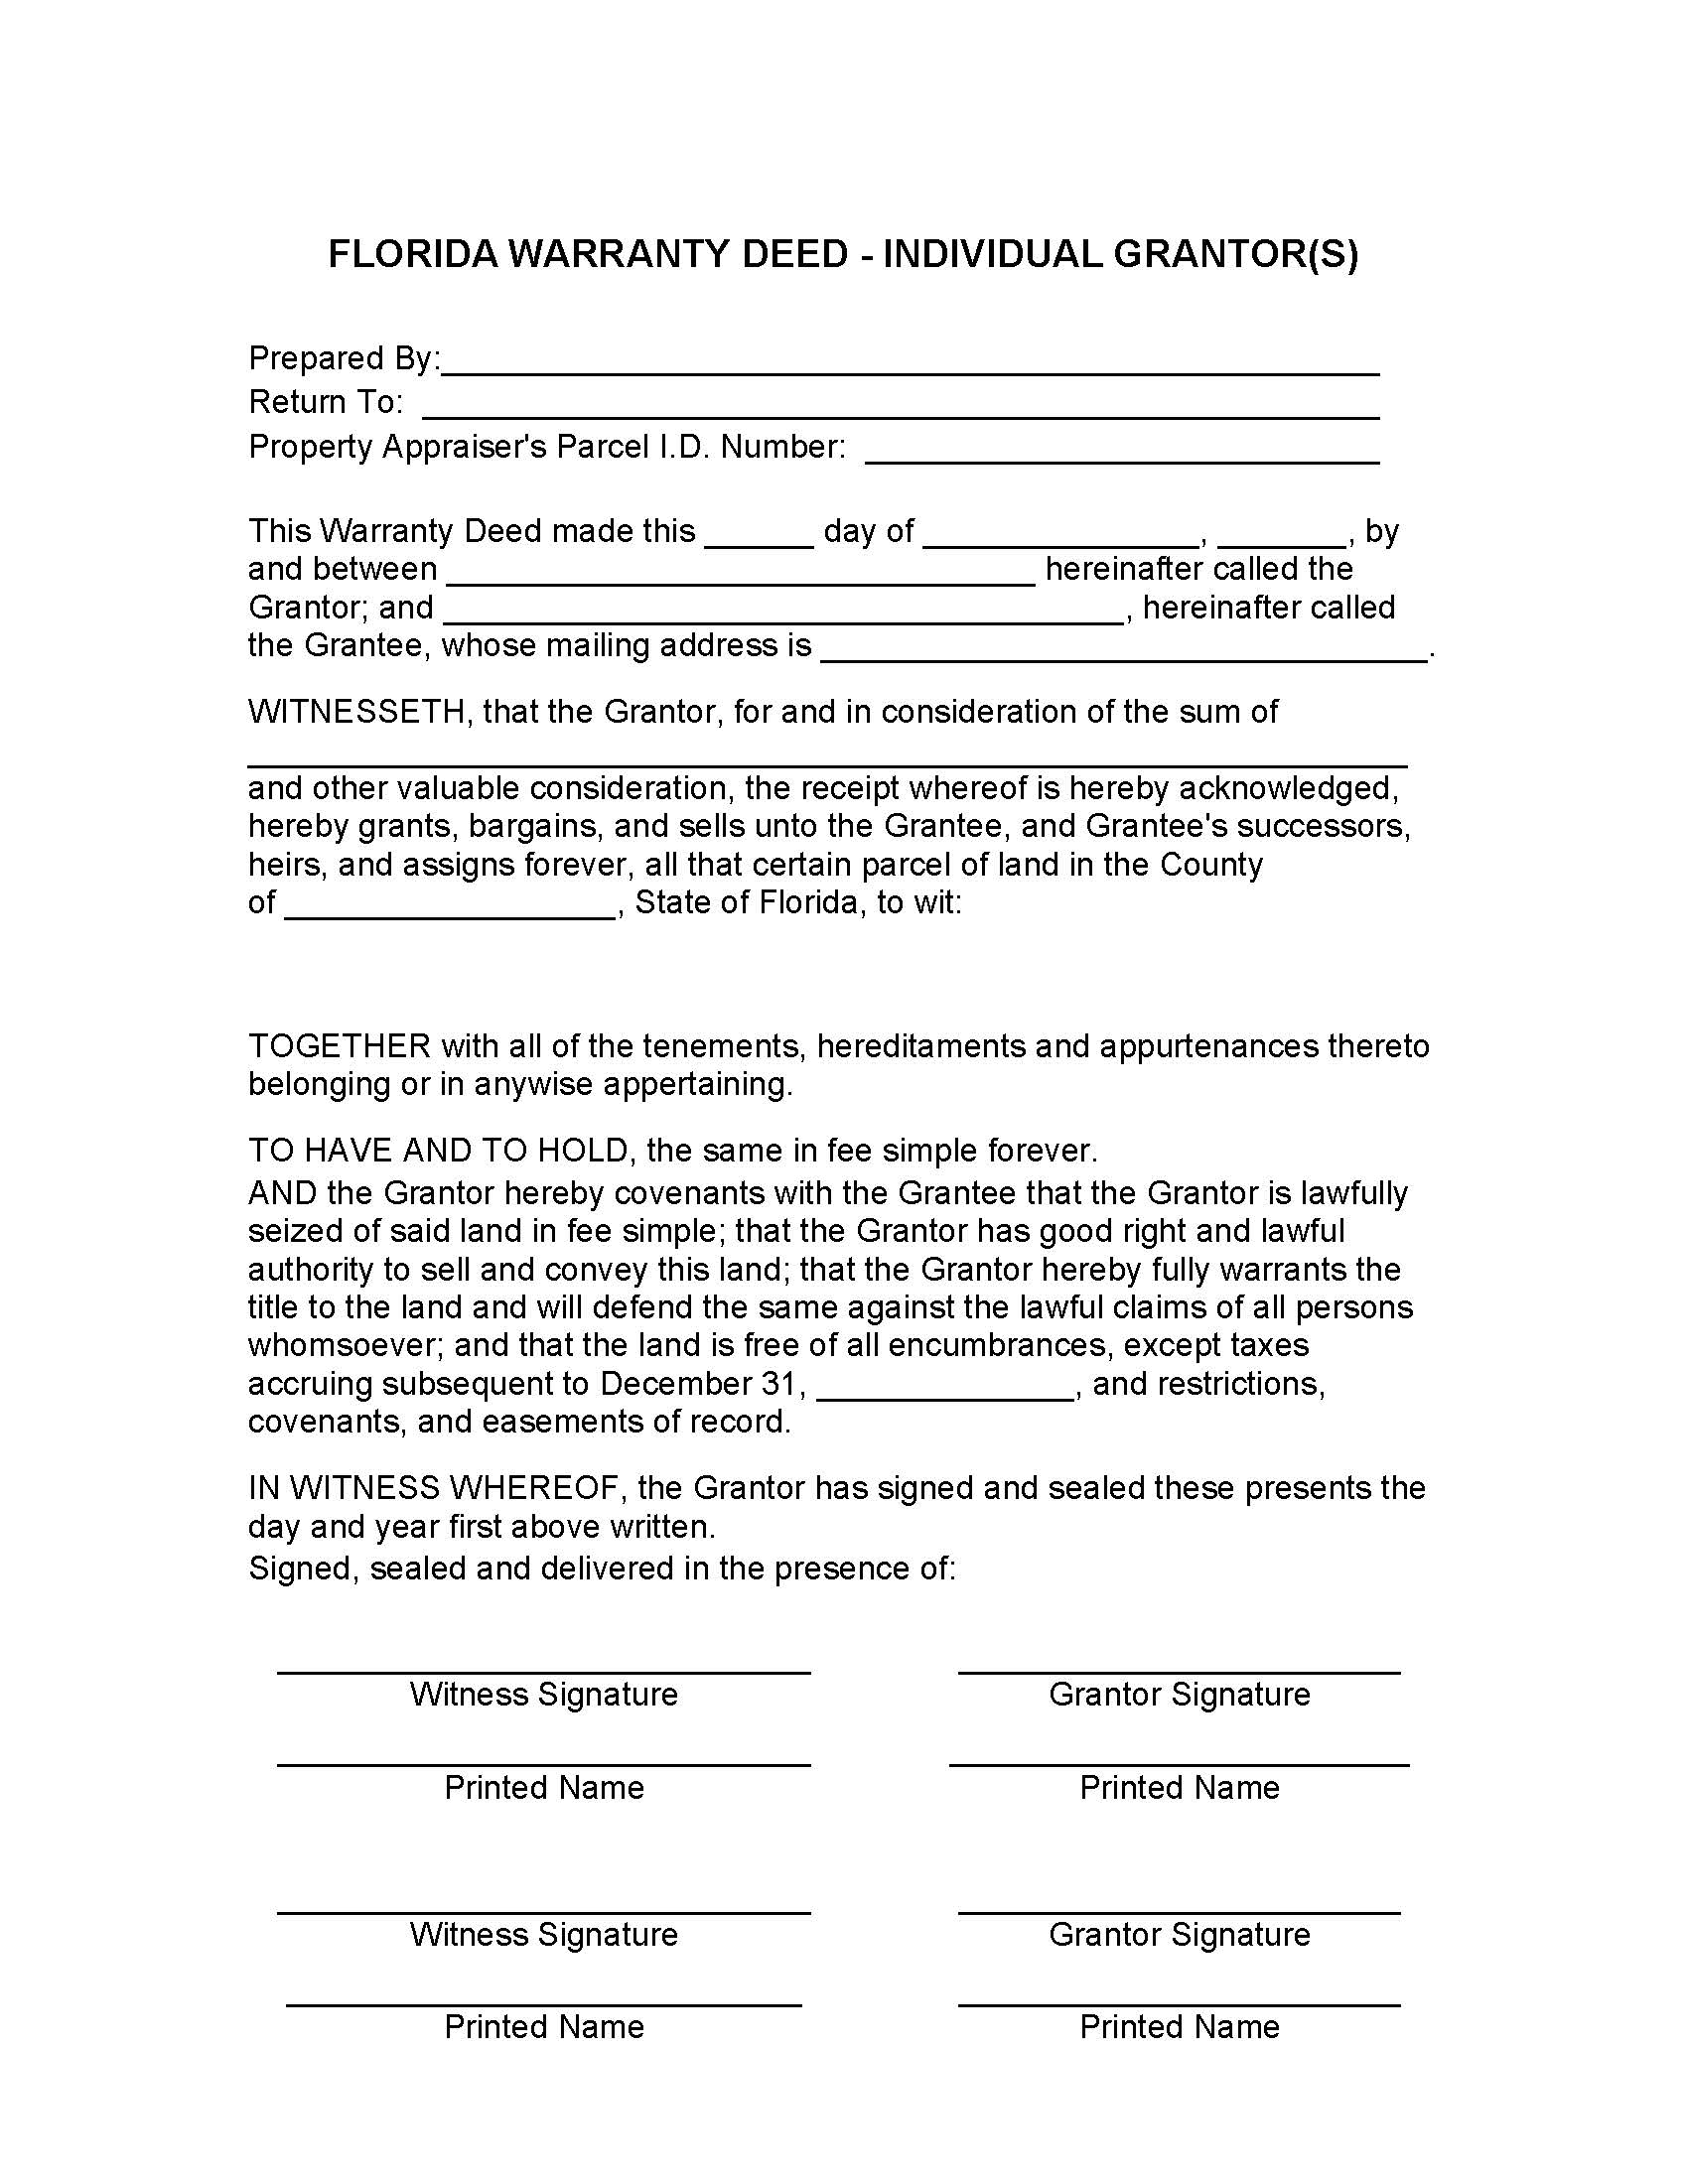 Warranty Deed Forms Florida